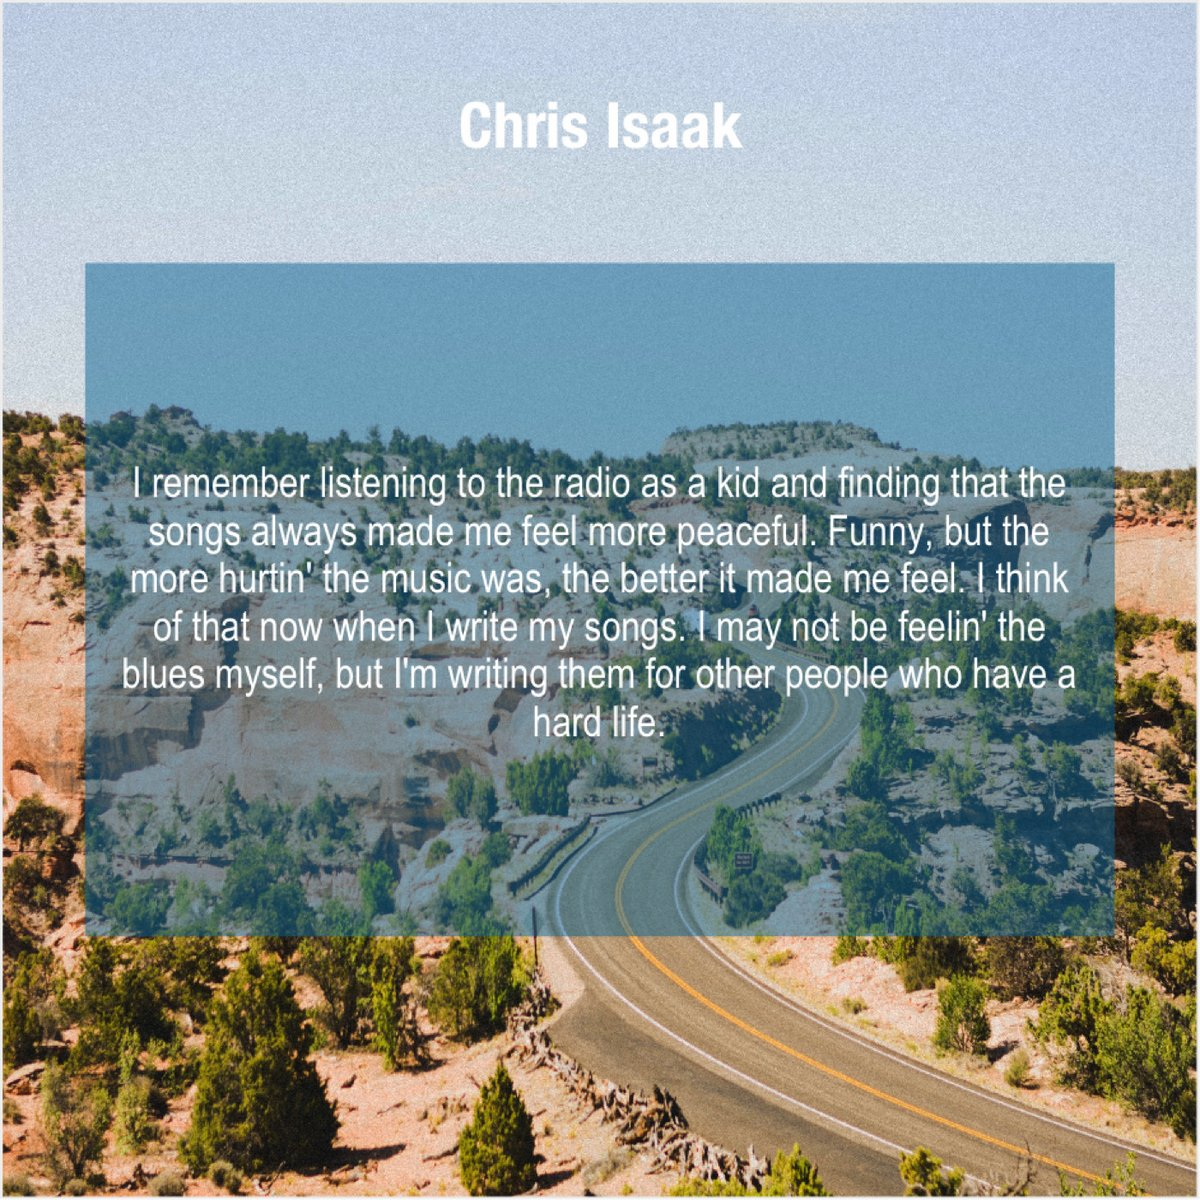 Chris Isaak – I remember listening to the… http://dlvr.it/RQV1v7 More Free Quotes #quoteoftheday #inspiration #motivationpic.twitter.com/tmWC2fAGwy